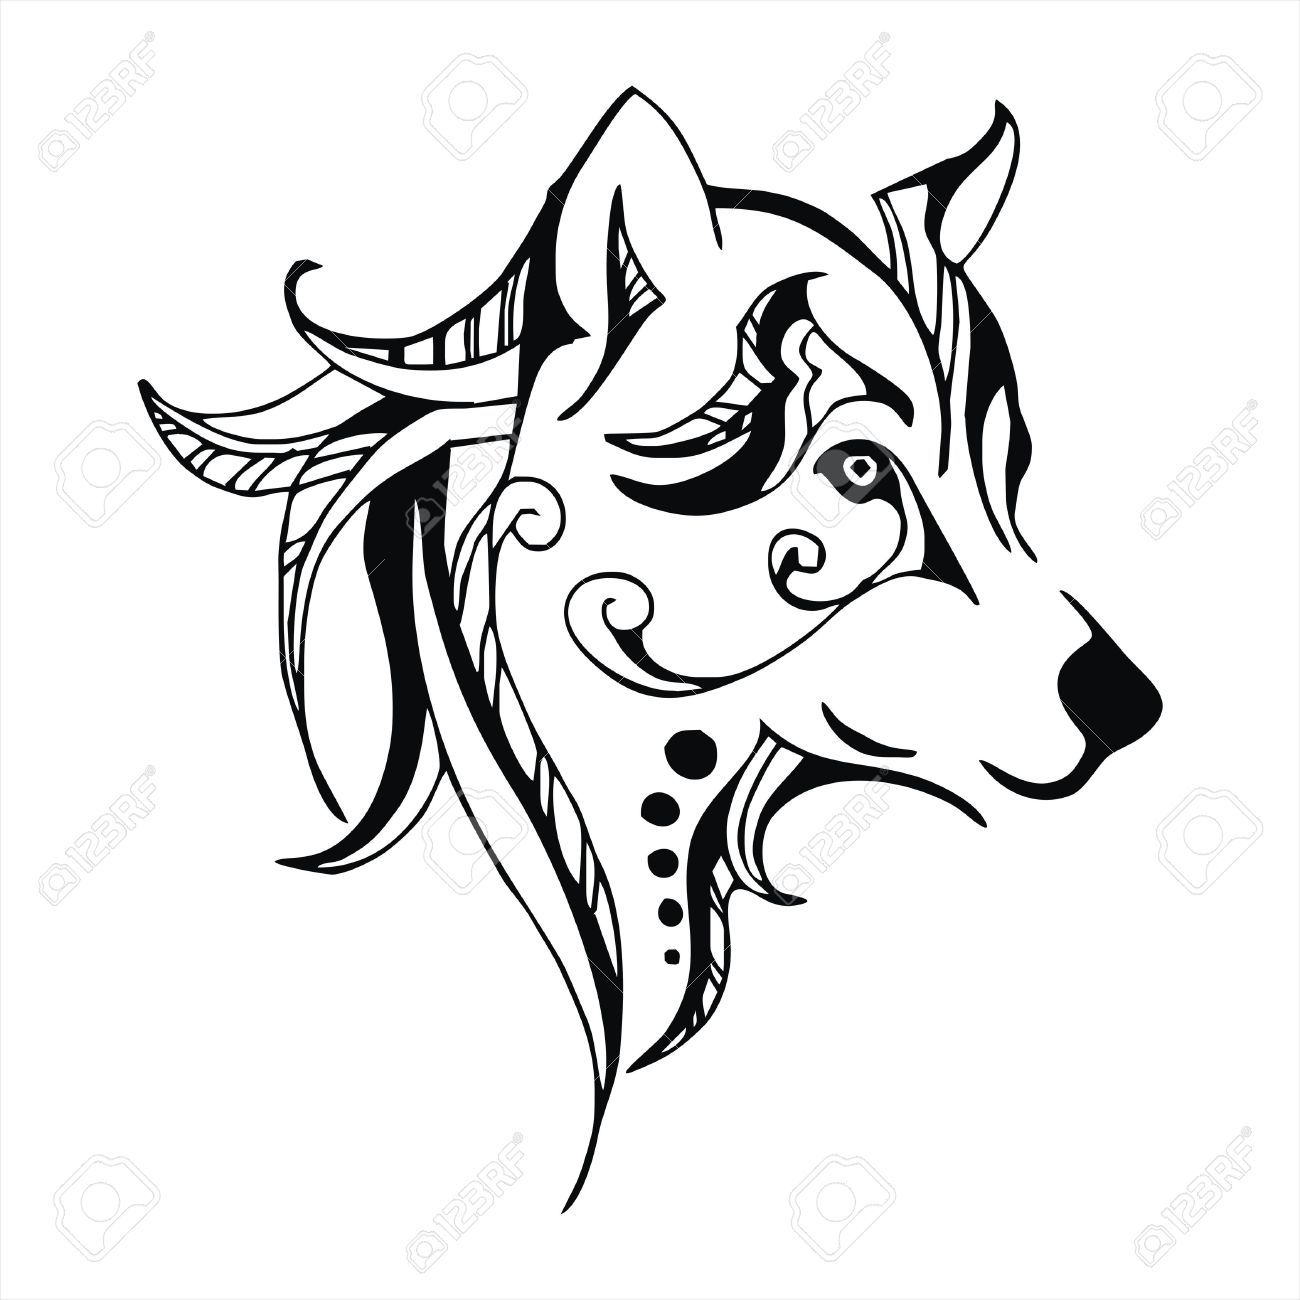 husky tatoo - Google Search | Tattoo Ideas | Pinterest | Tatuajes de ...